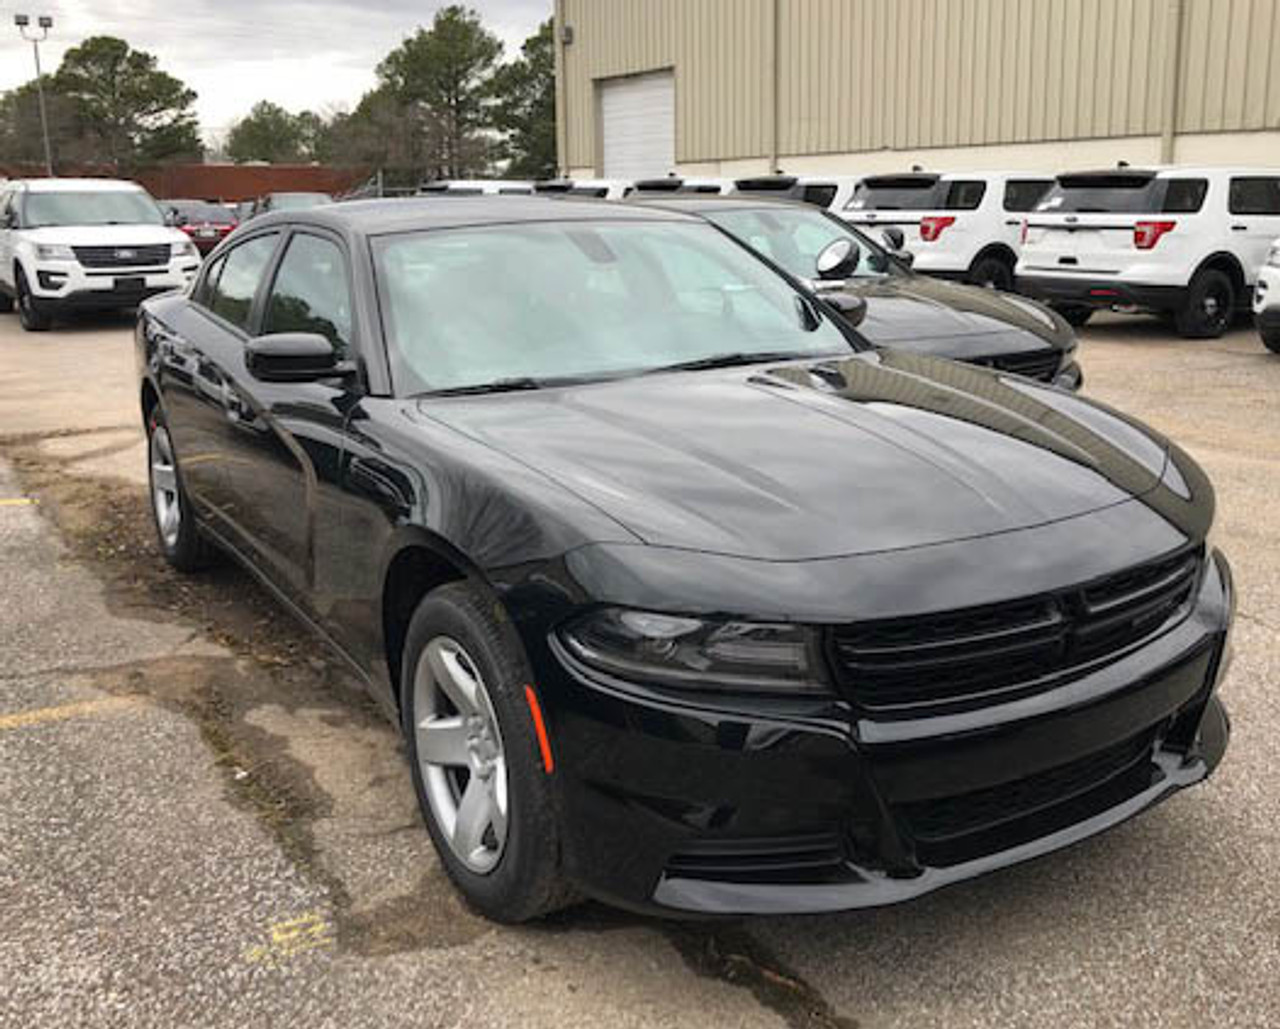 New 2019 Black Dodge Charger V6 2WD ready to be built as a Marked Patrol Package Police Pursuit Car,  choose any color LED Lights, + Delivery